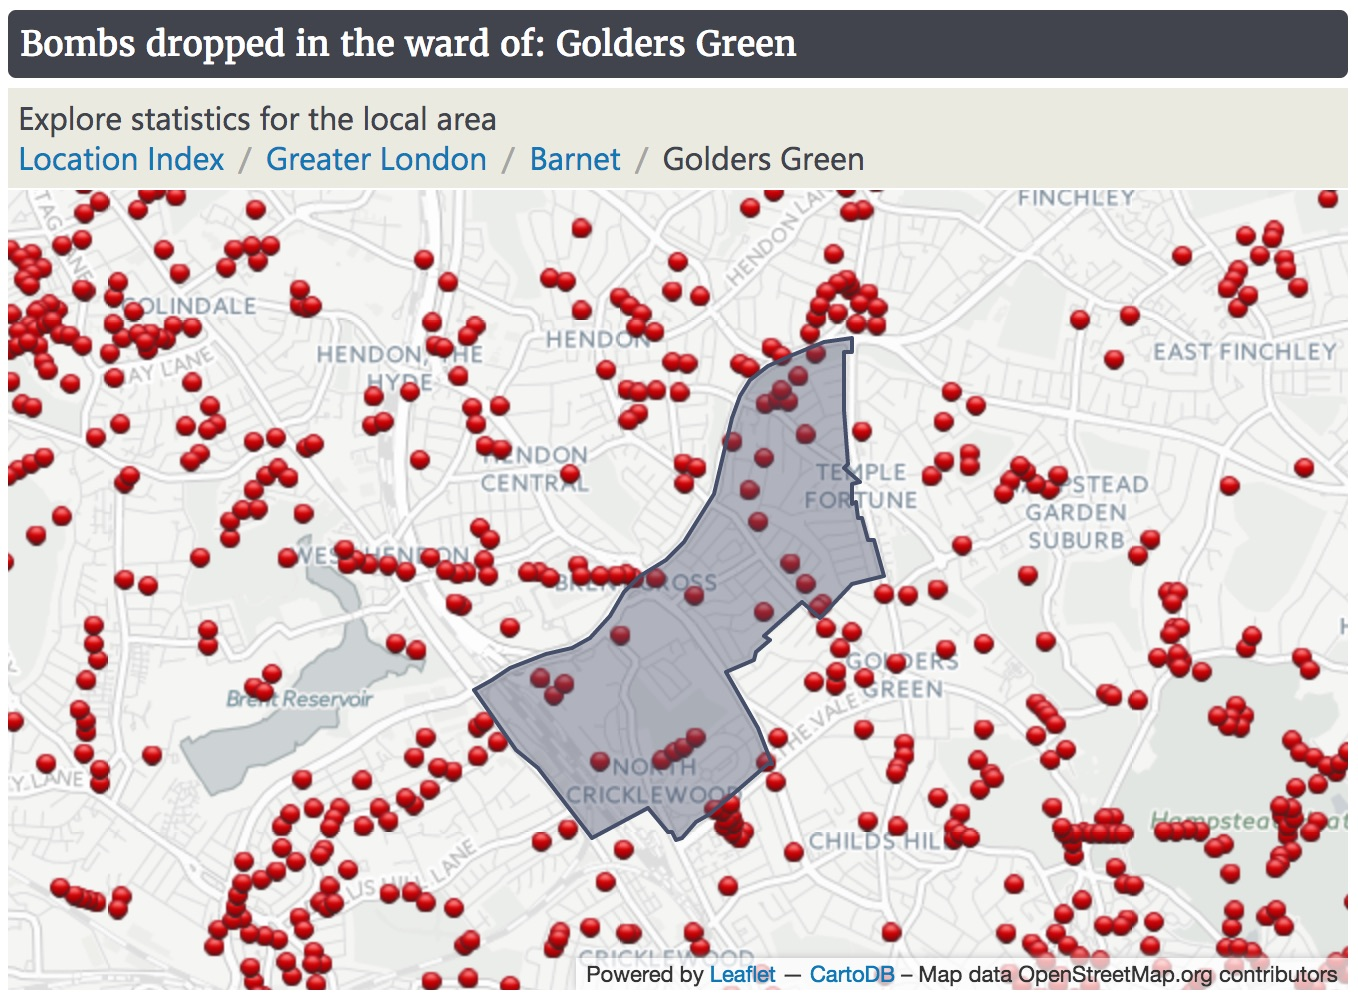 Map of the area in North London where Granddad lived when he was a wee boy. The map shows where the bombs dropped